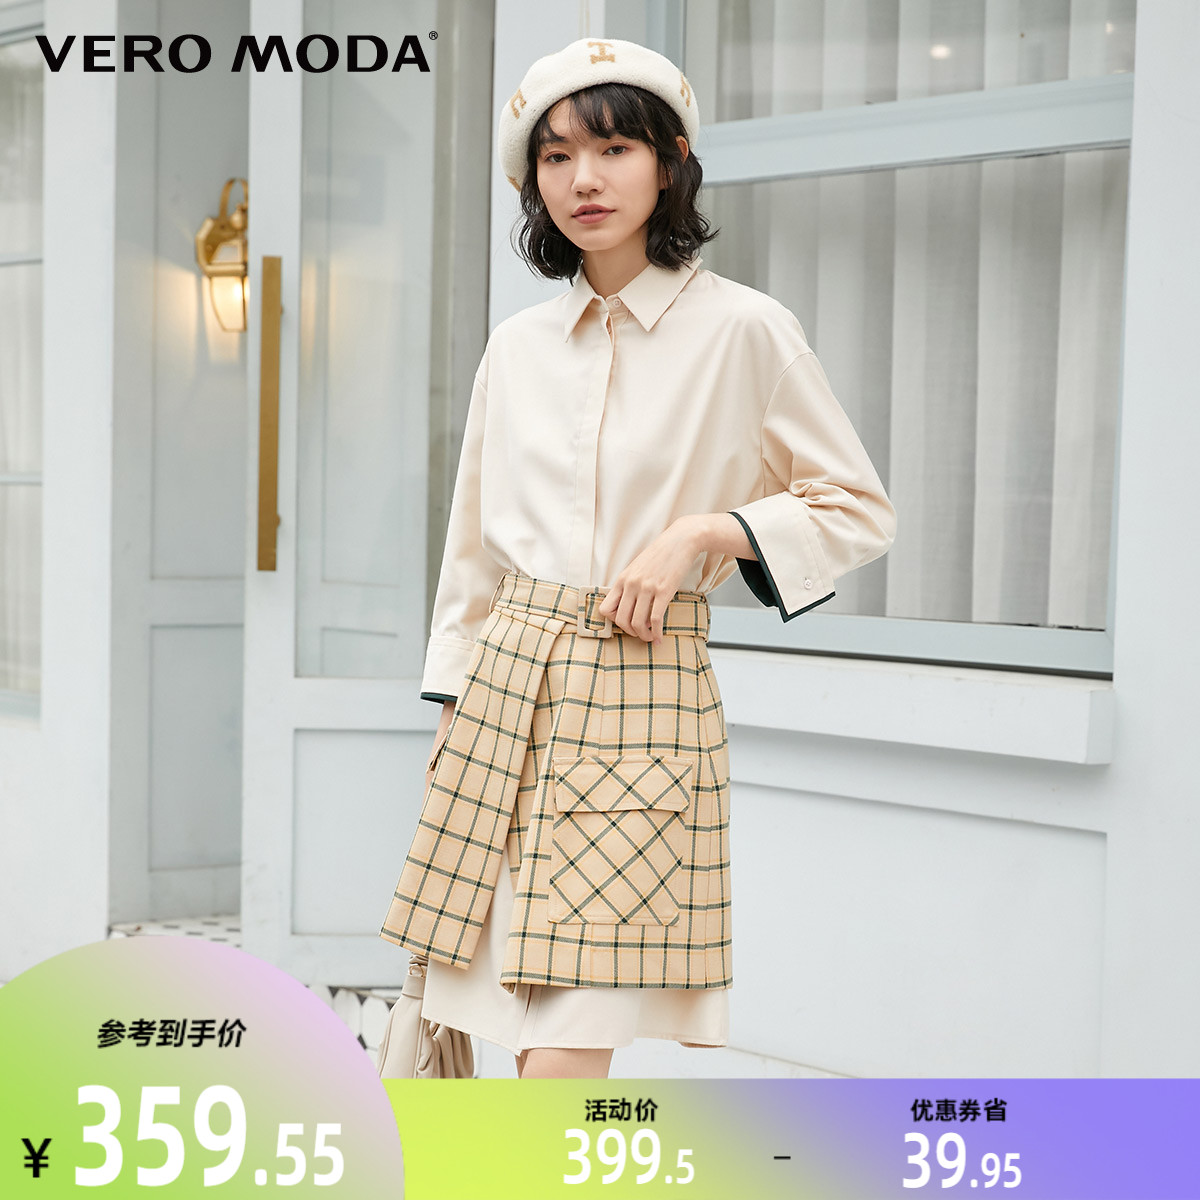 Vero MODA2020 autumn and winter, two shirts, short skirt suit dress